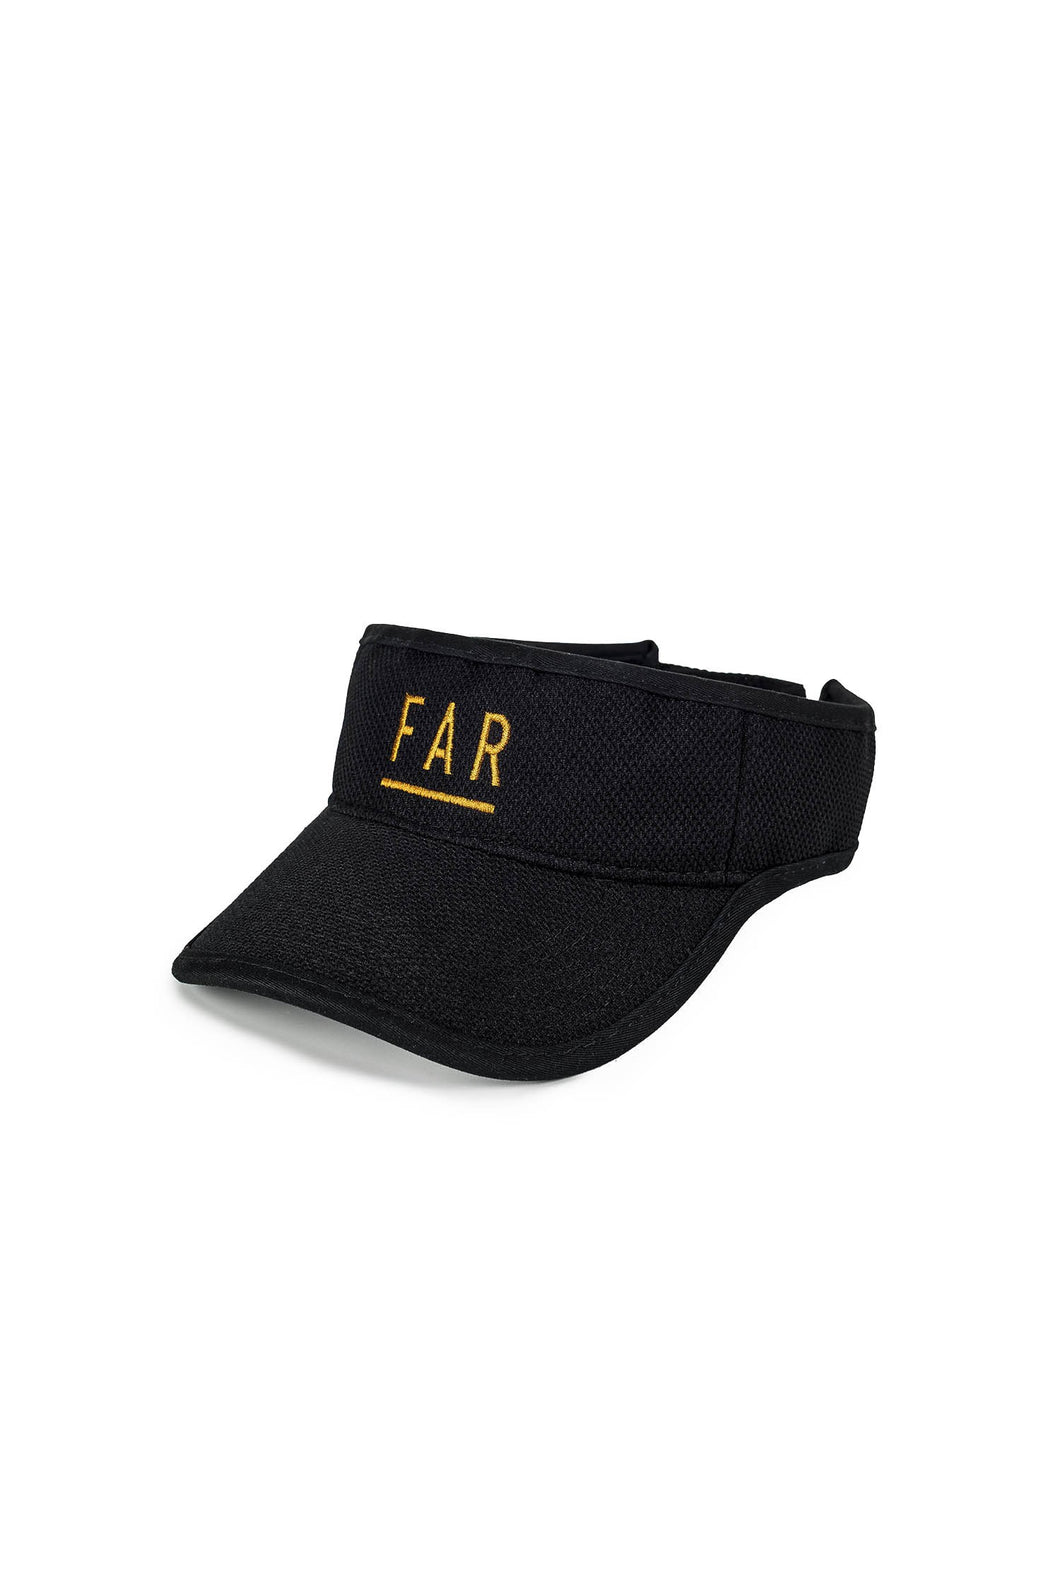 Running Visor - Gold